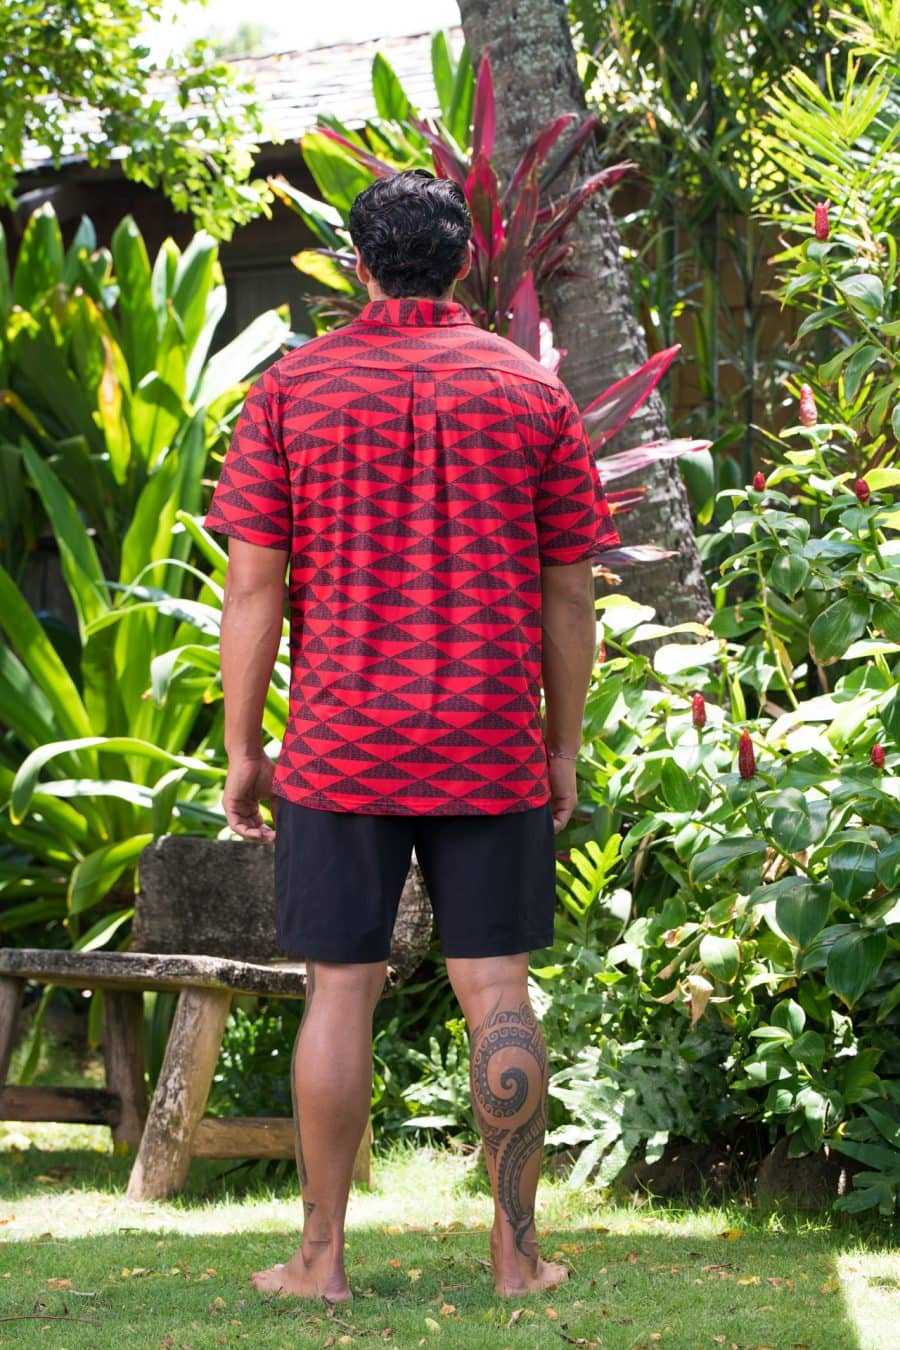 Male model wearing Golf Aloha Pullover in Chinese Red-Black Mauna Pattern - Back View